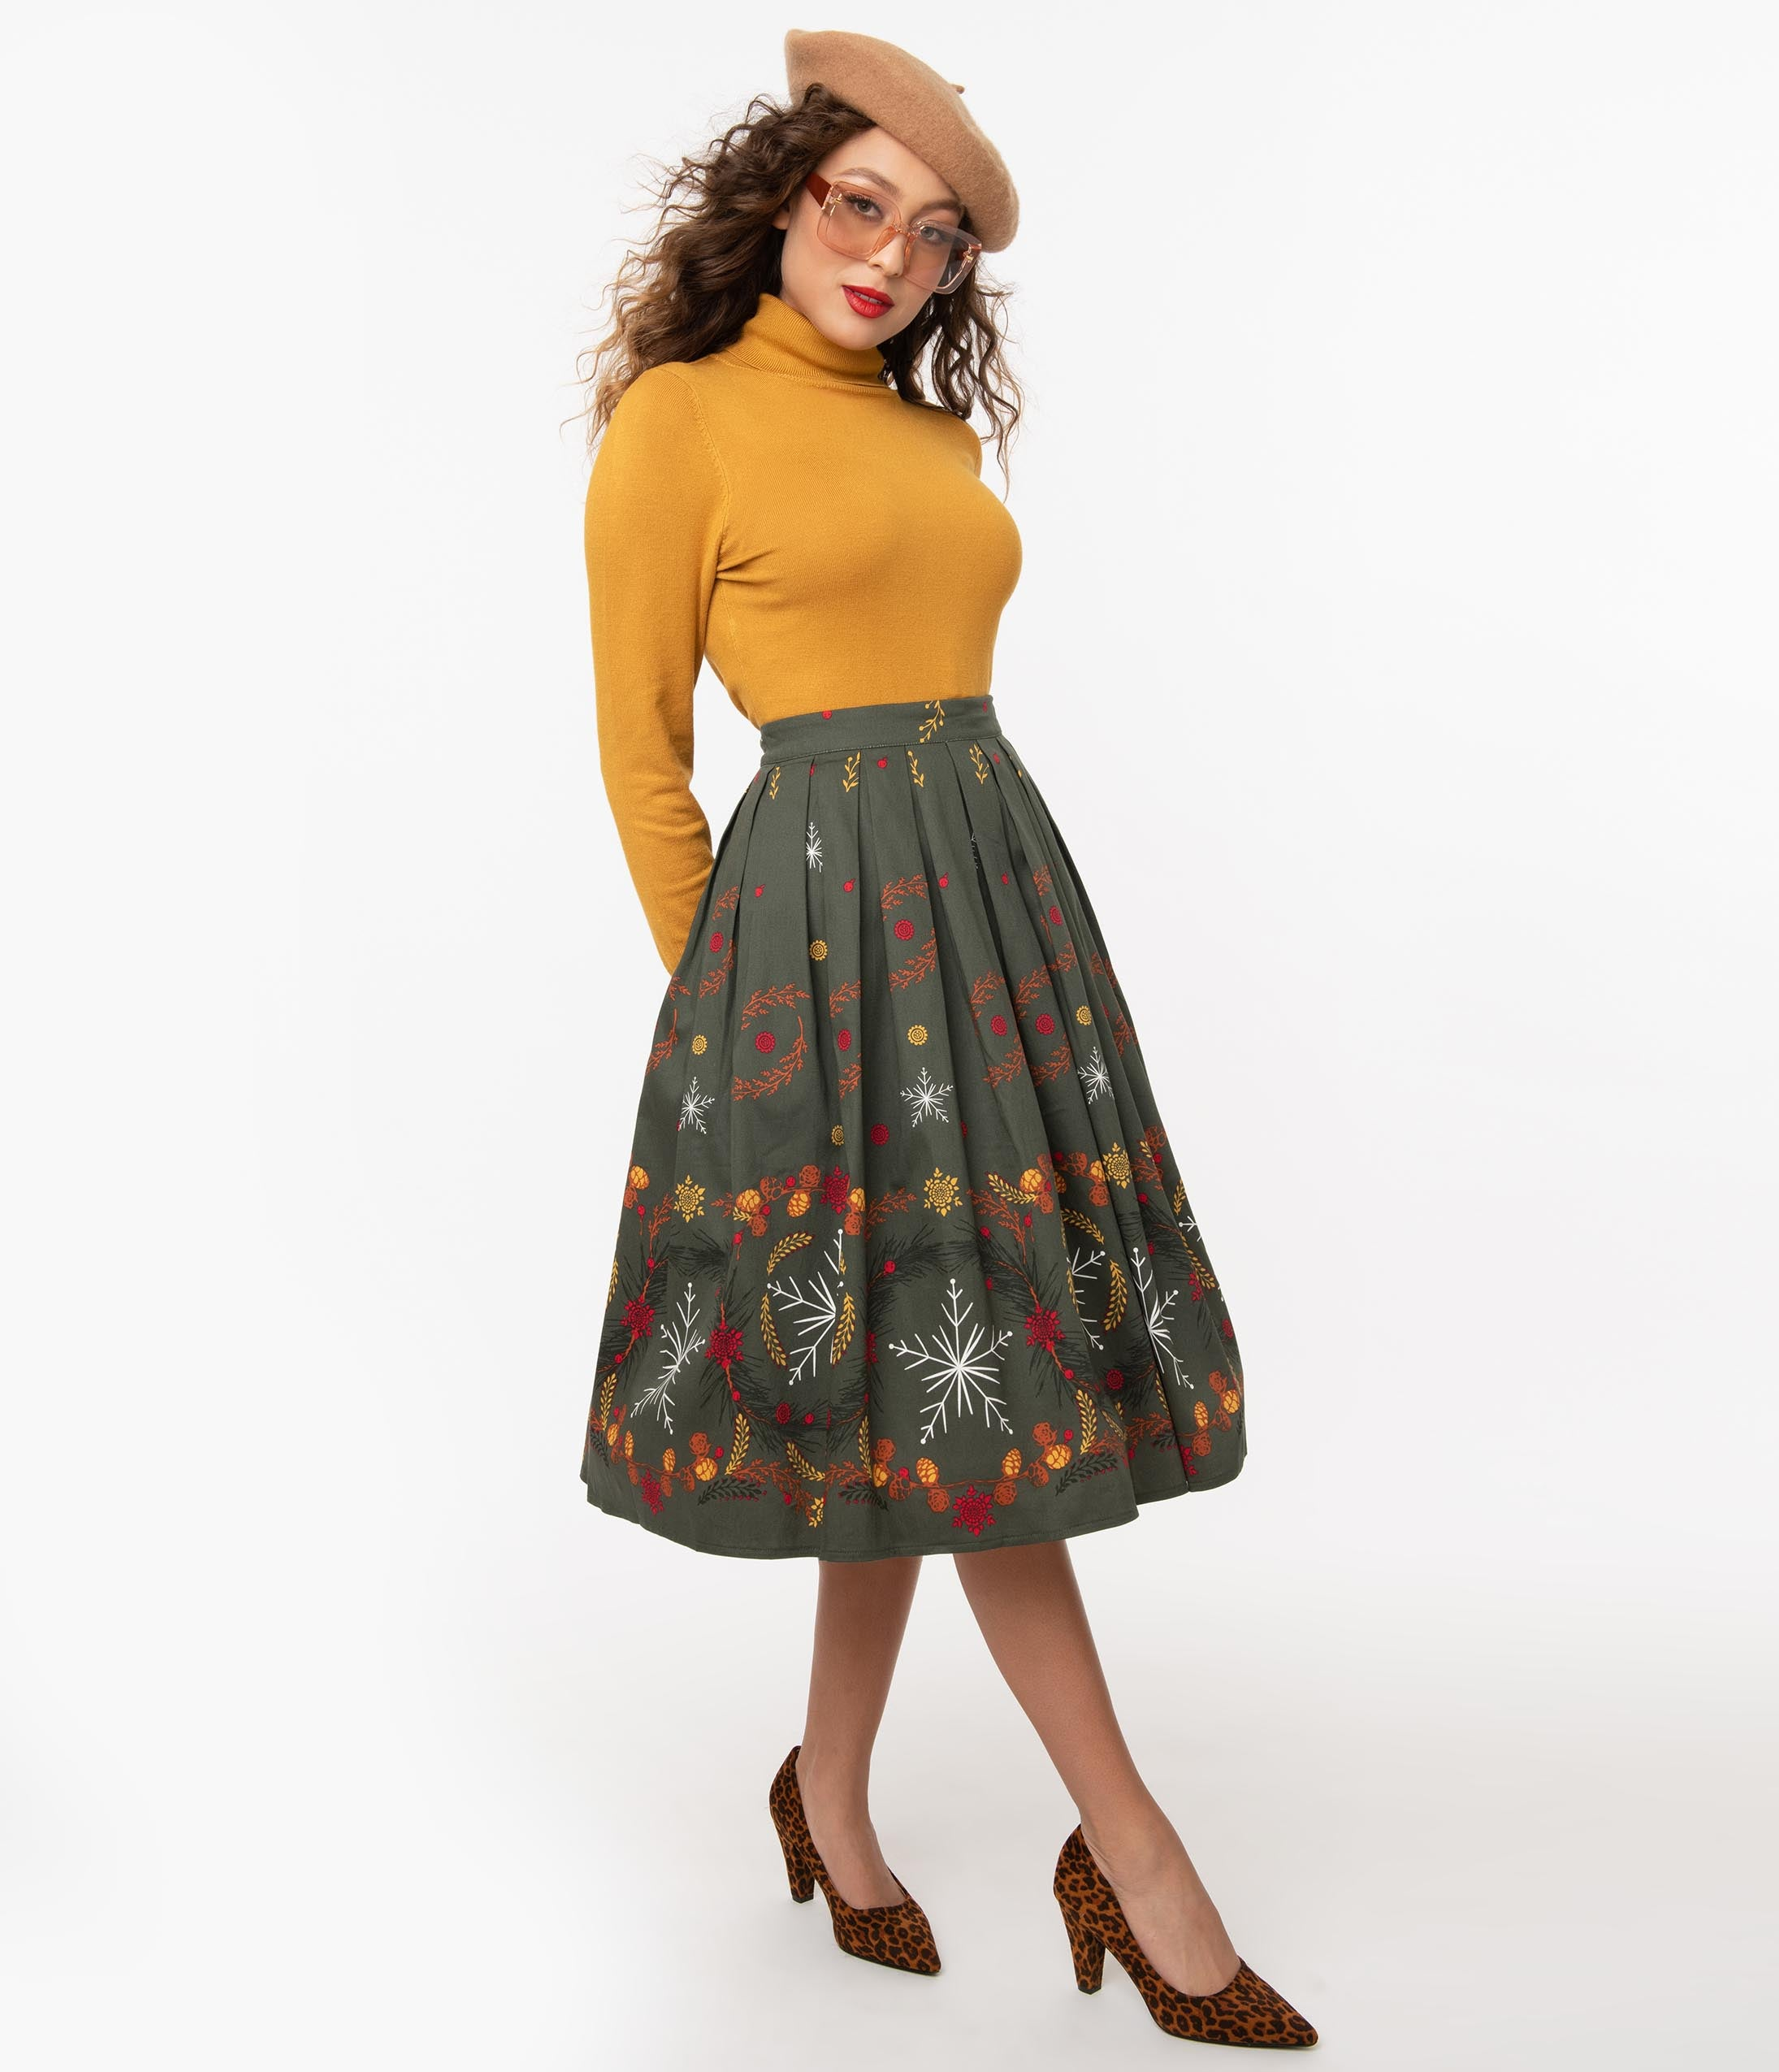 50s Skirt Styles | Poodle Skirts, Circle Skirts, Pencil Skirts 1950s 1950S Olive  Winter Leaves Print Pleated Swing Skirt $58.00 AT vintagedancer.com